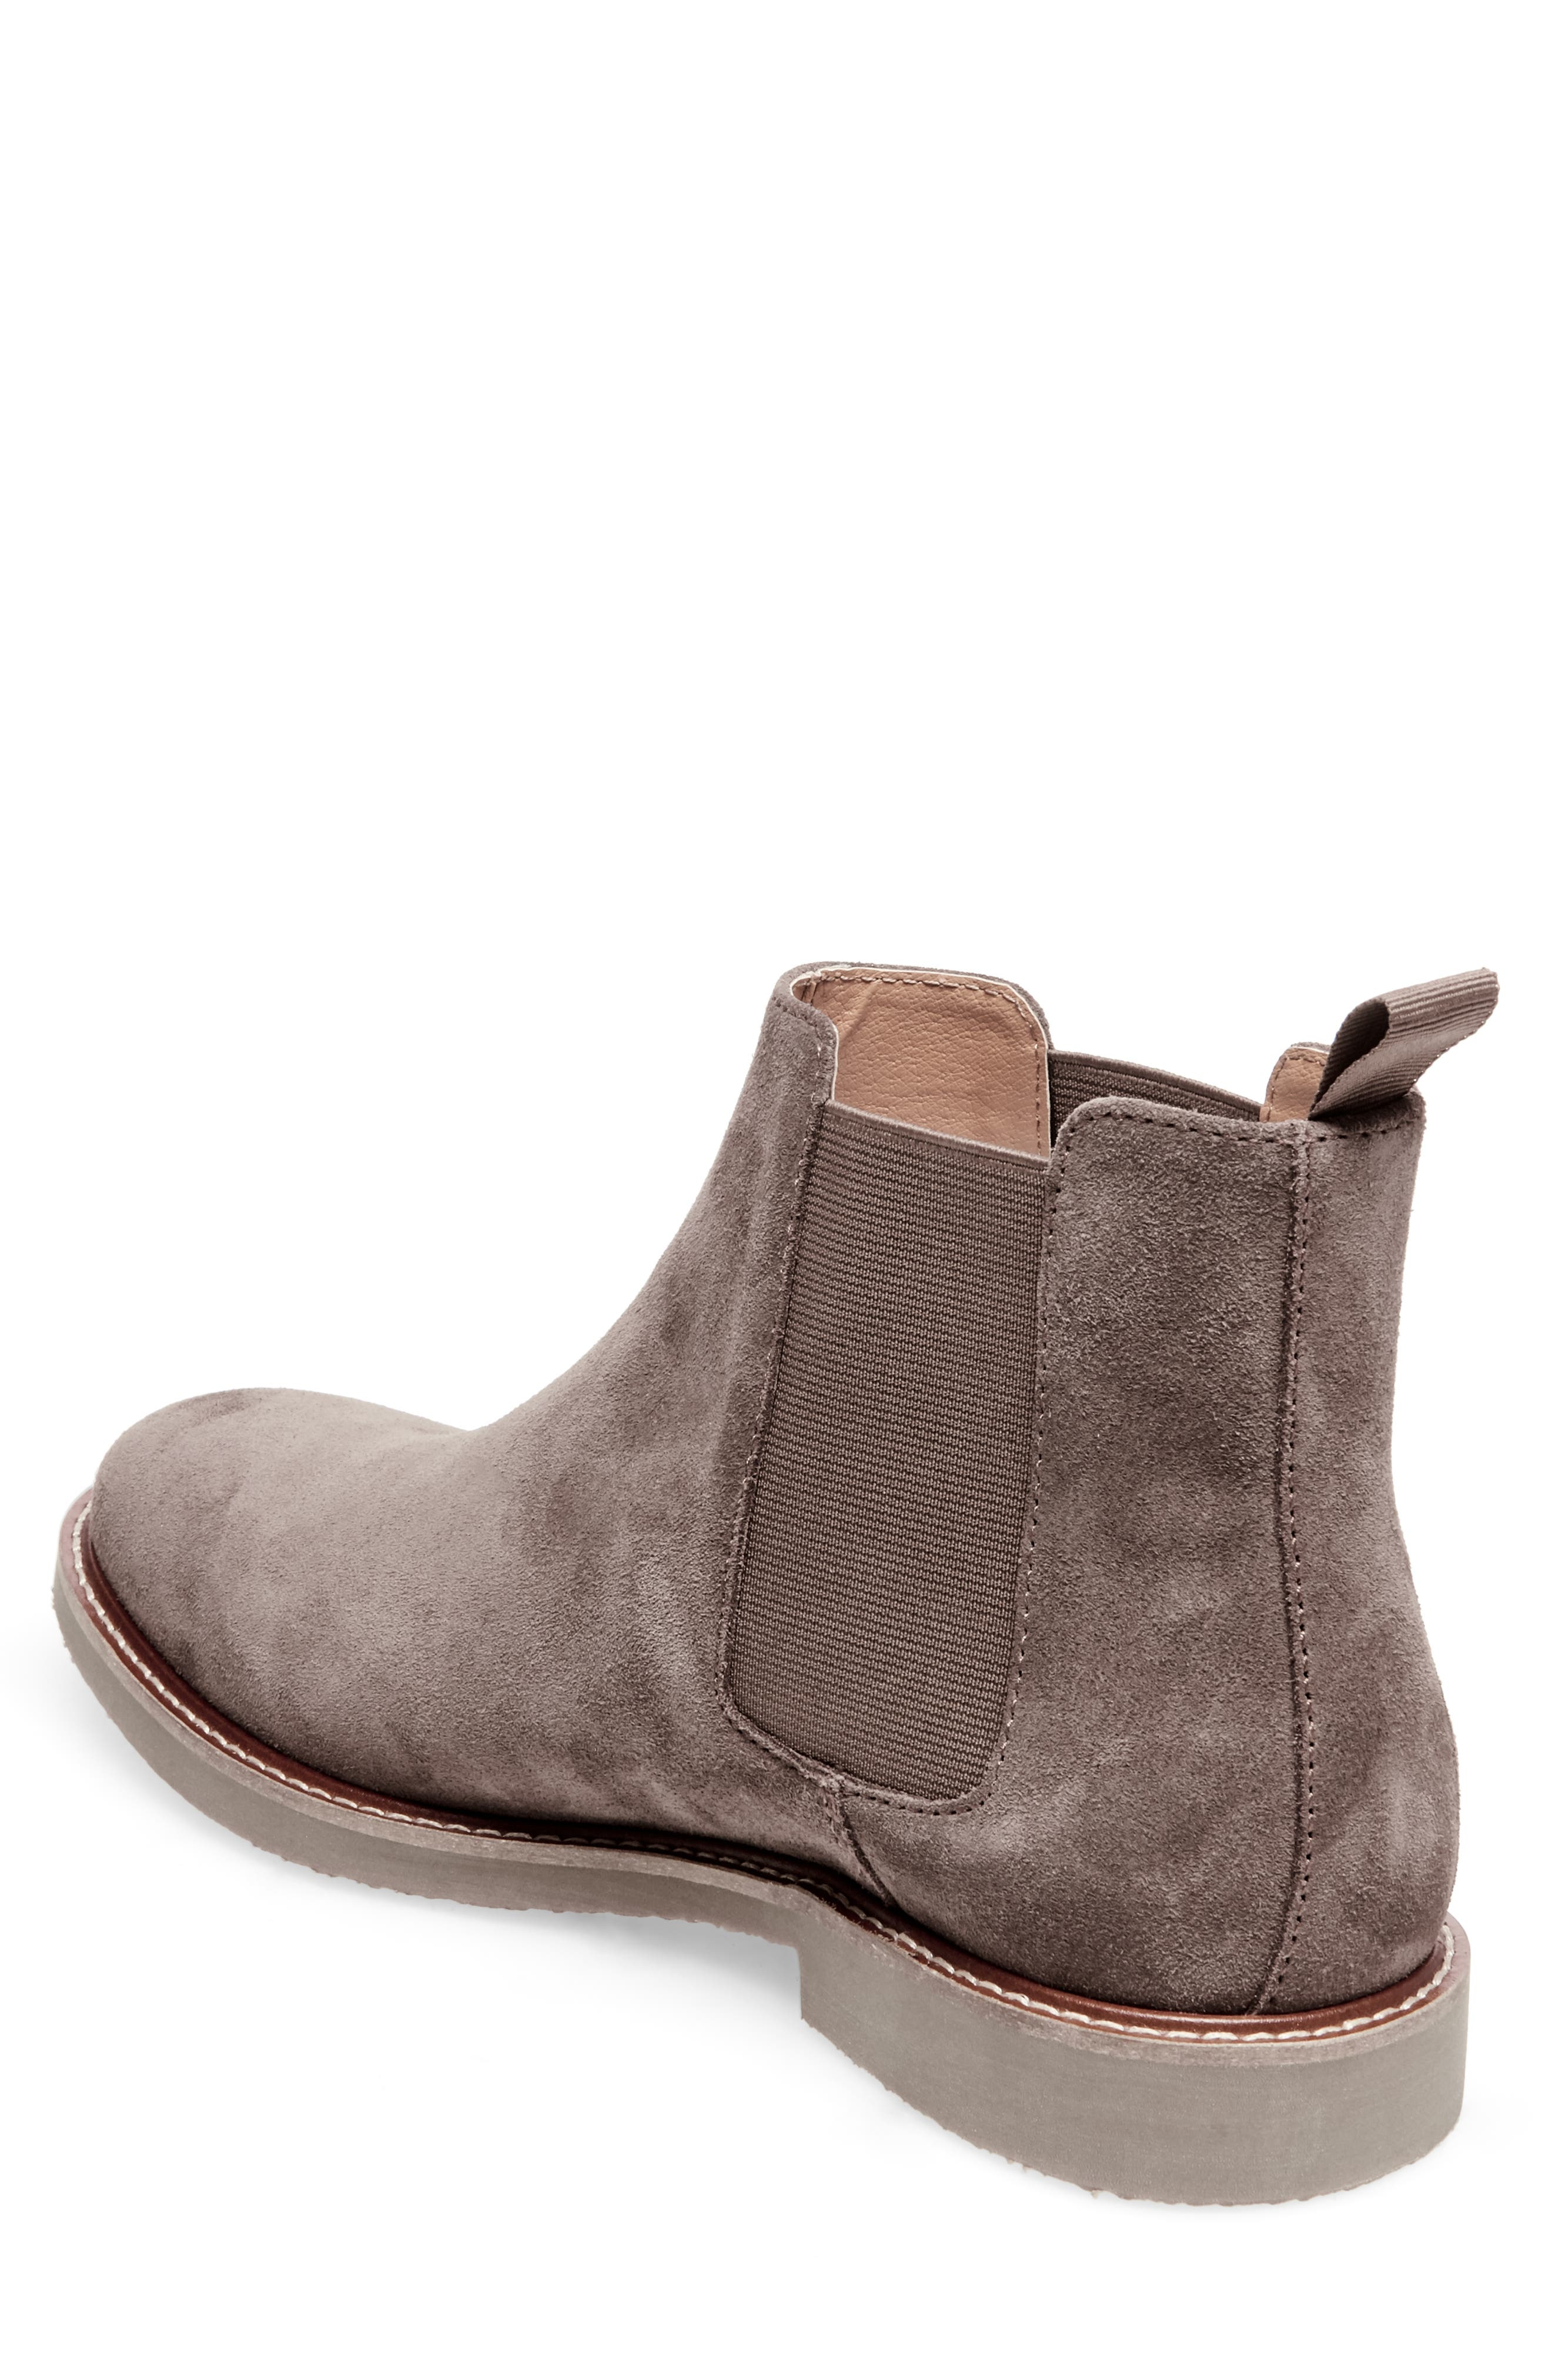 Highline Chelsea Boot,                             Alternate thumbnail 2, color,                             TAUPE SUEDE